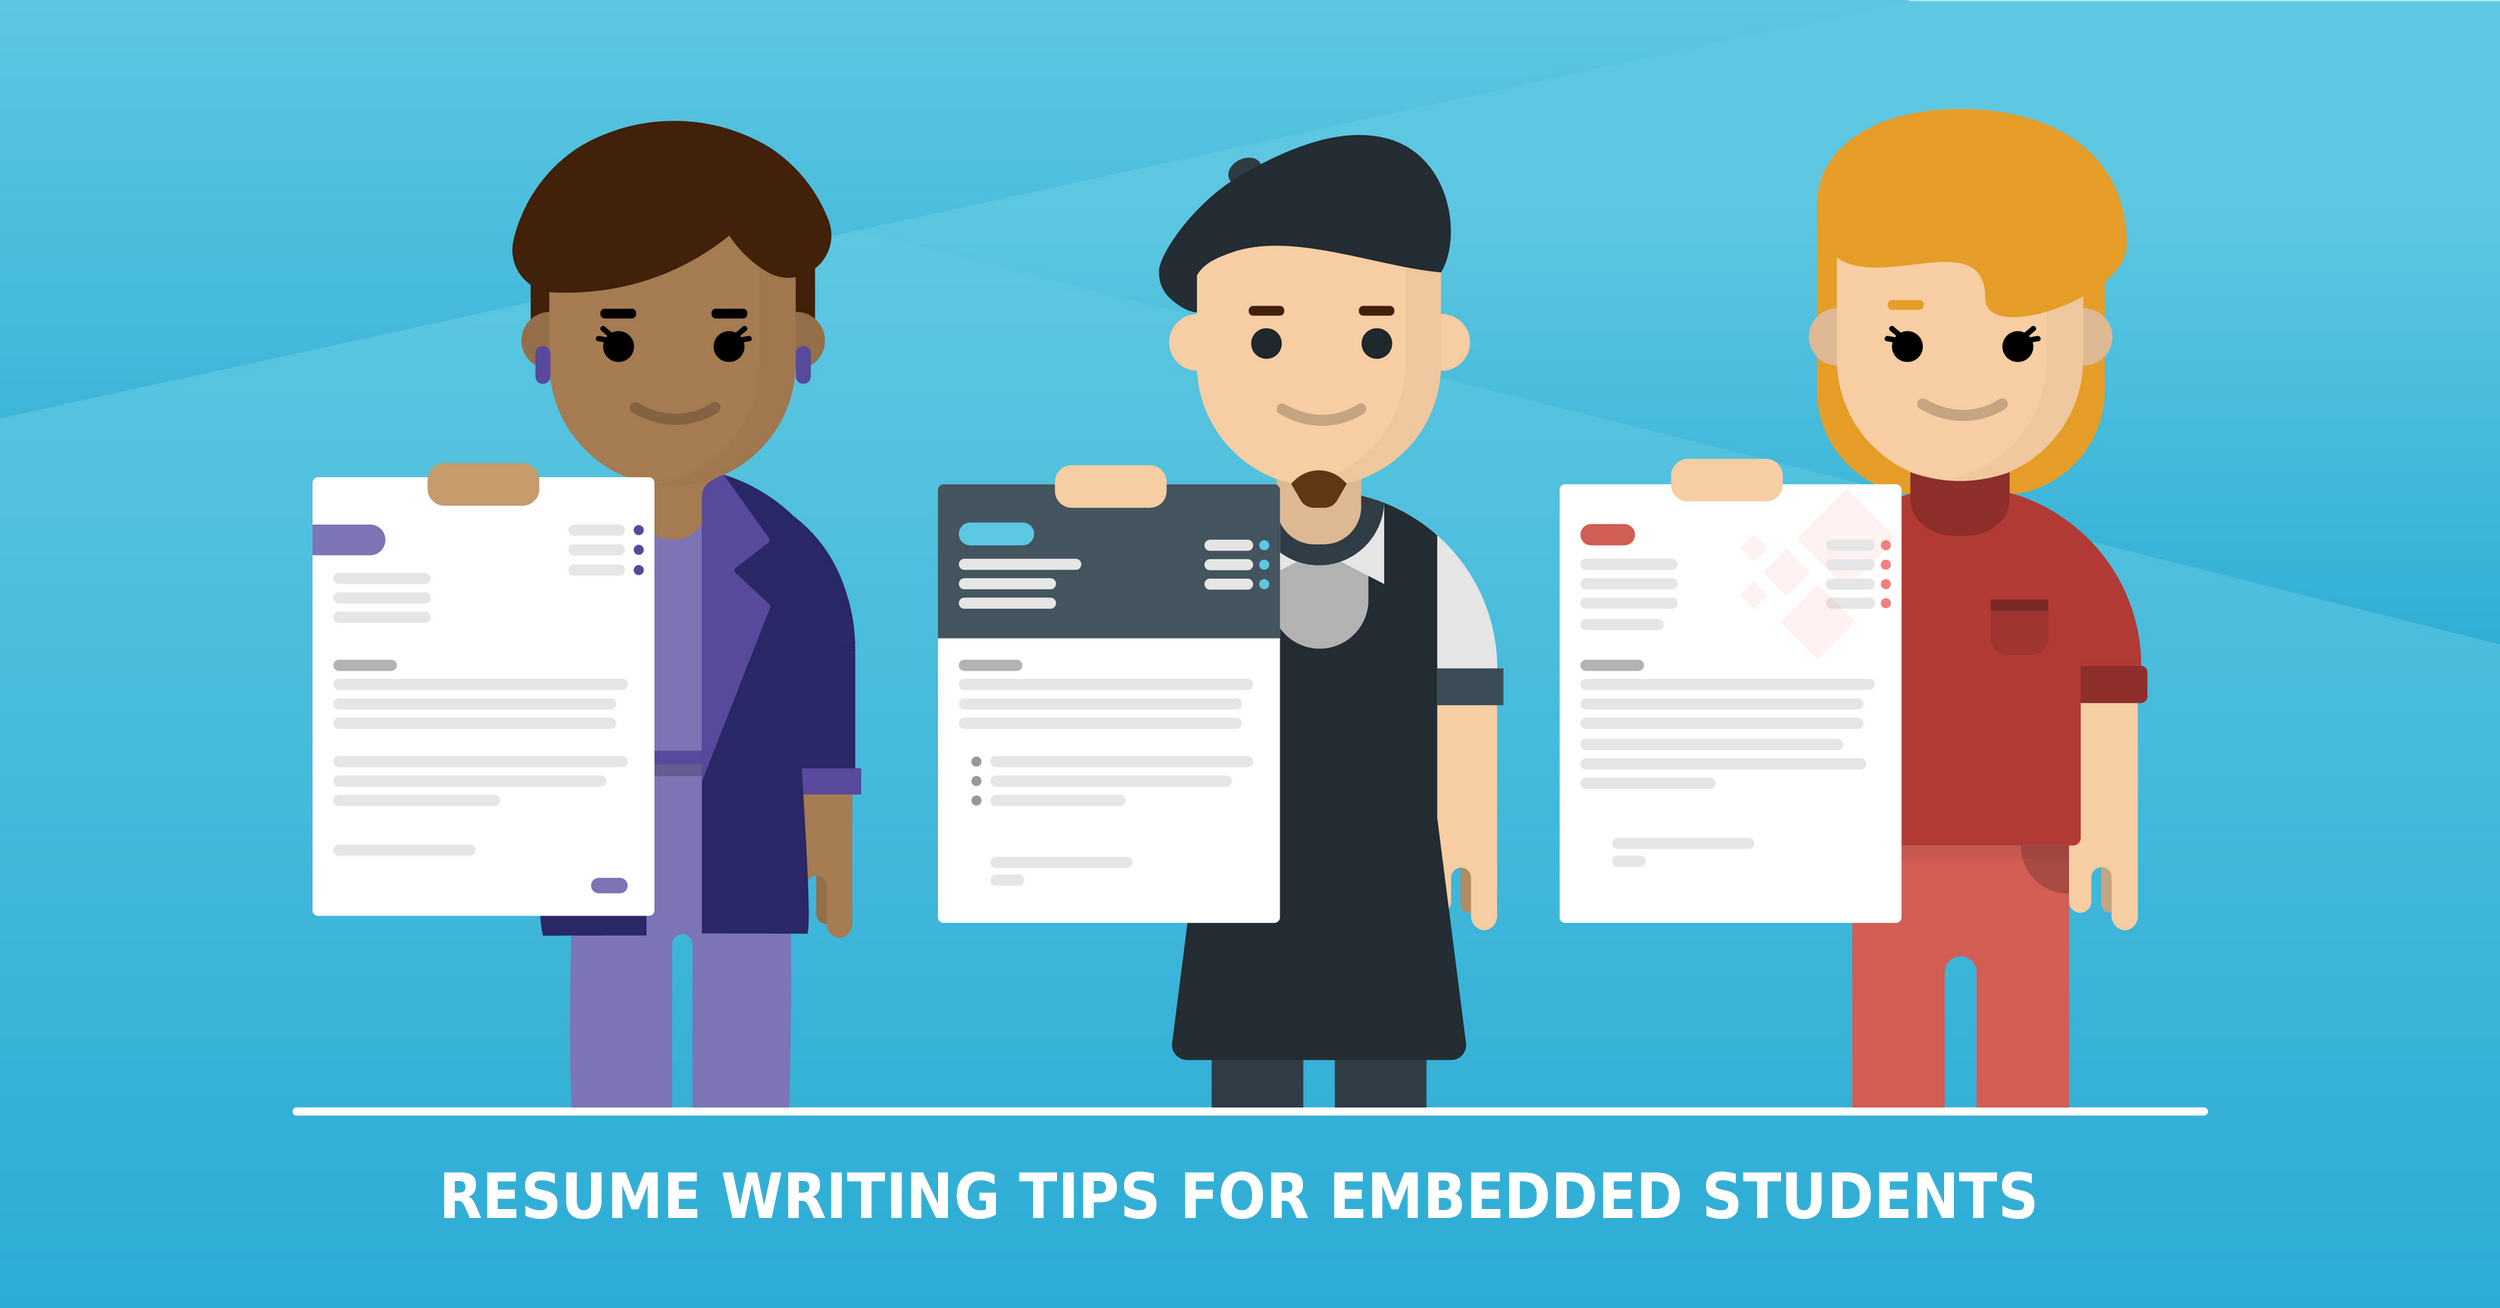 RESUME WRITING TIPS FOR EMBEDDED STUDENTS, ptinstitute